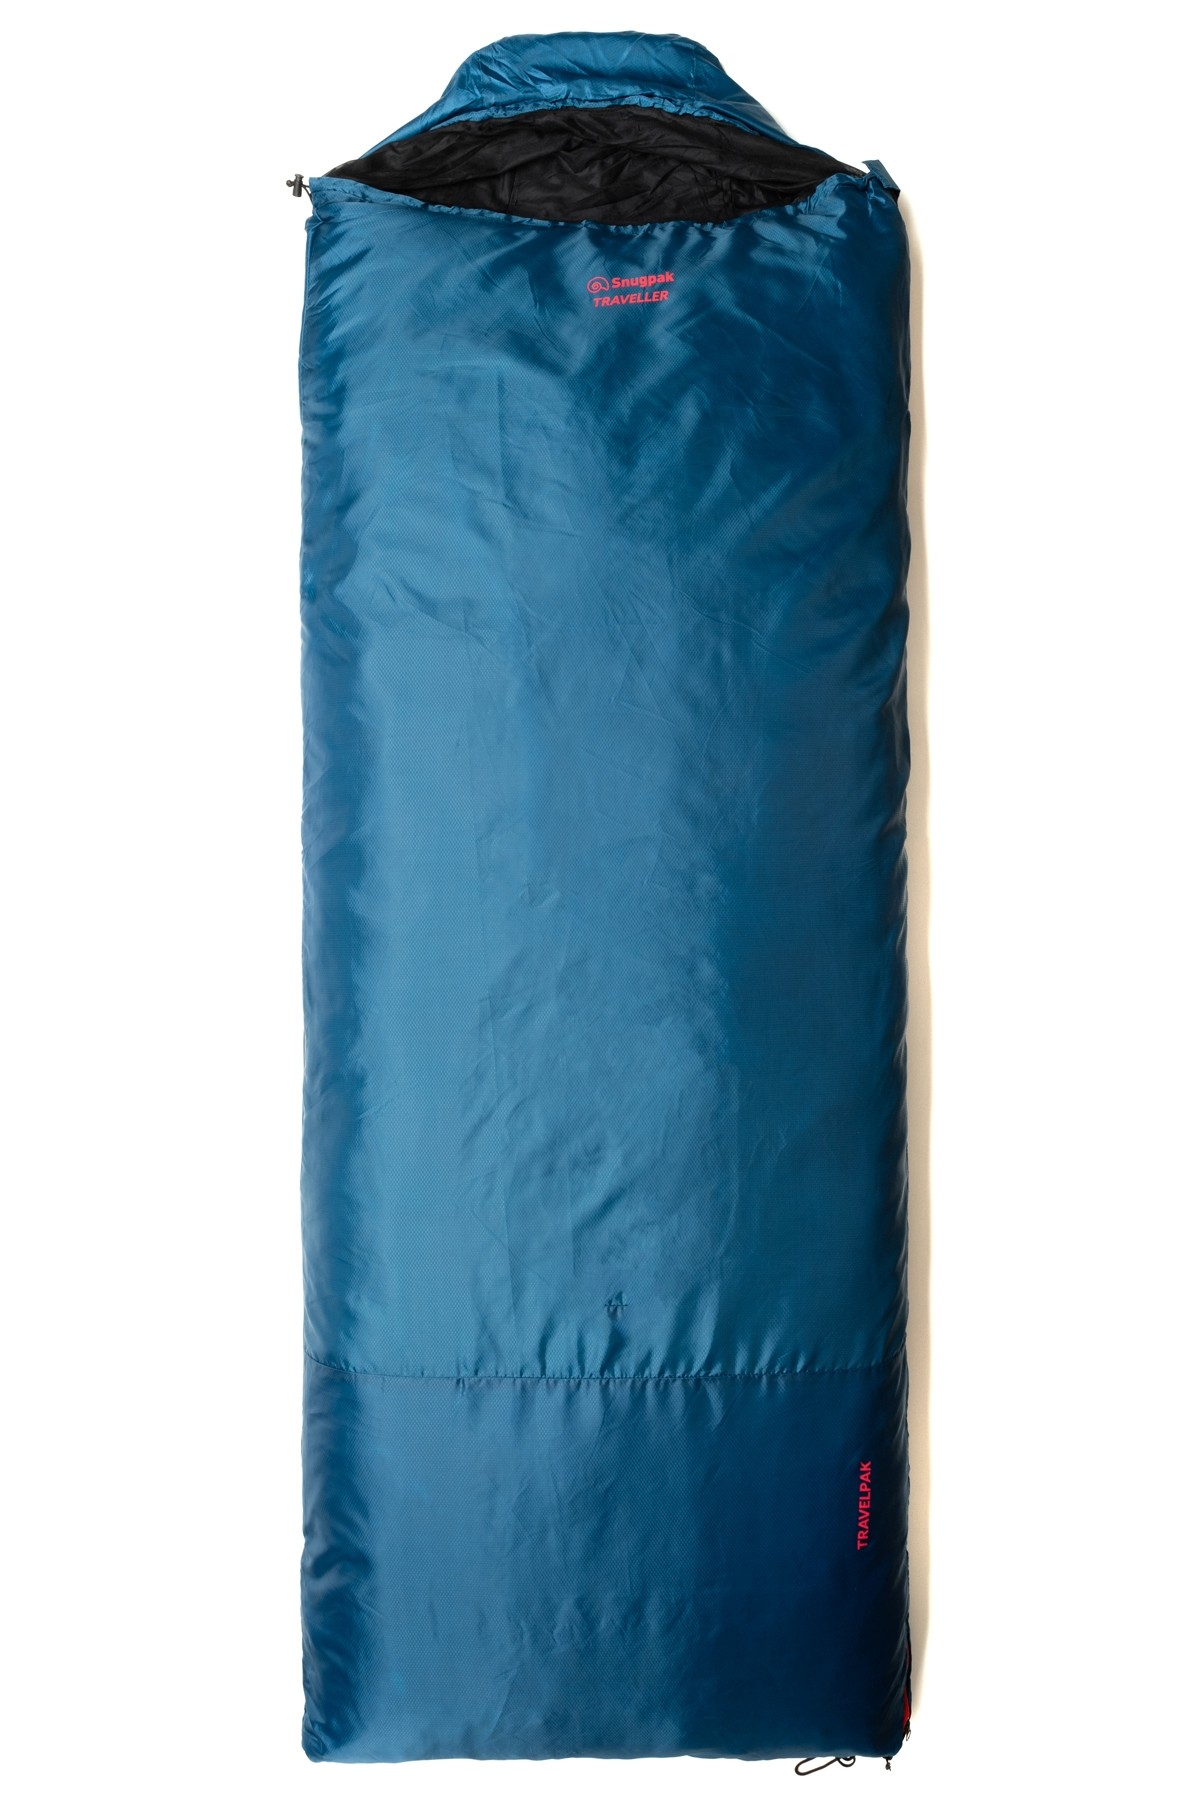 Snugpak Travelpak Traveller Blue Regular Right Zip